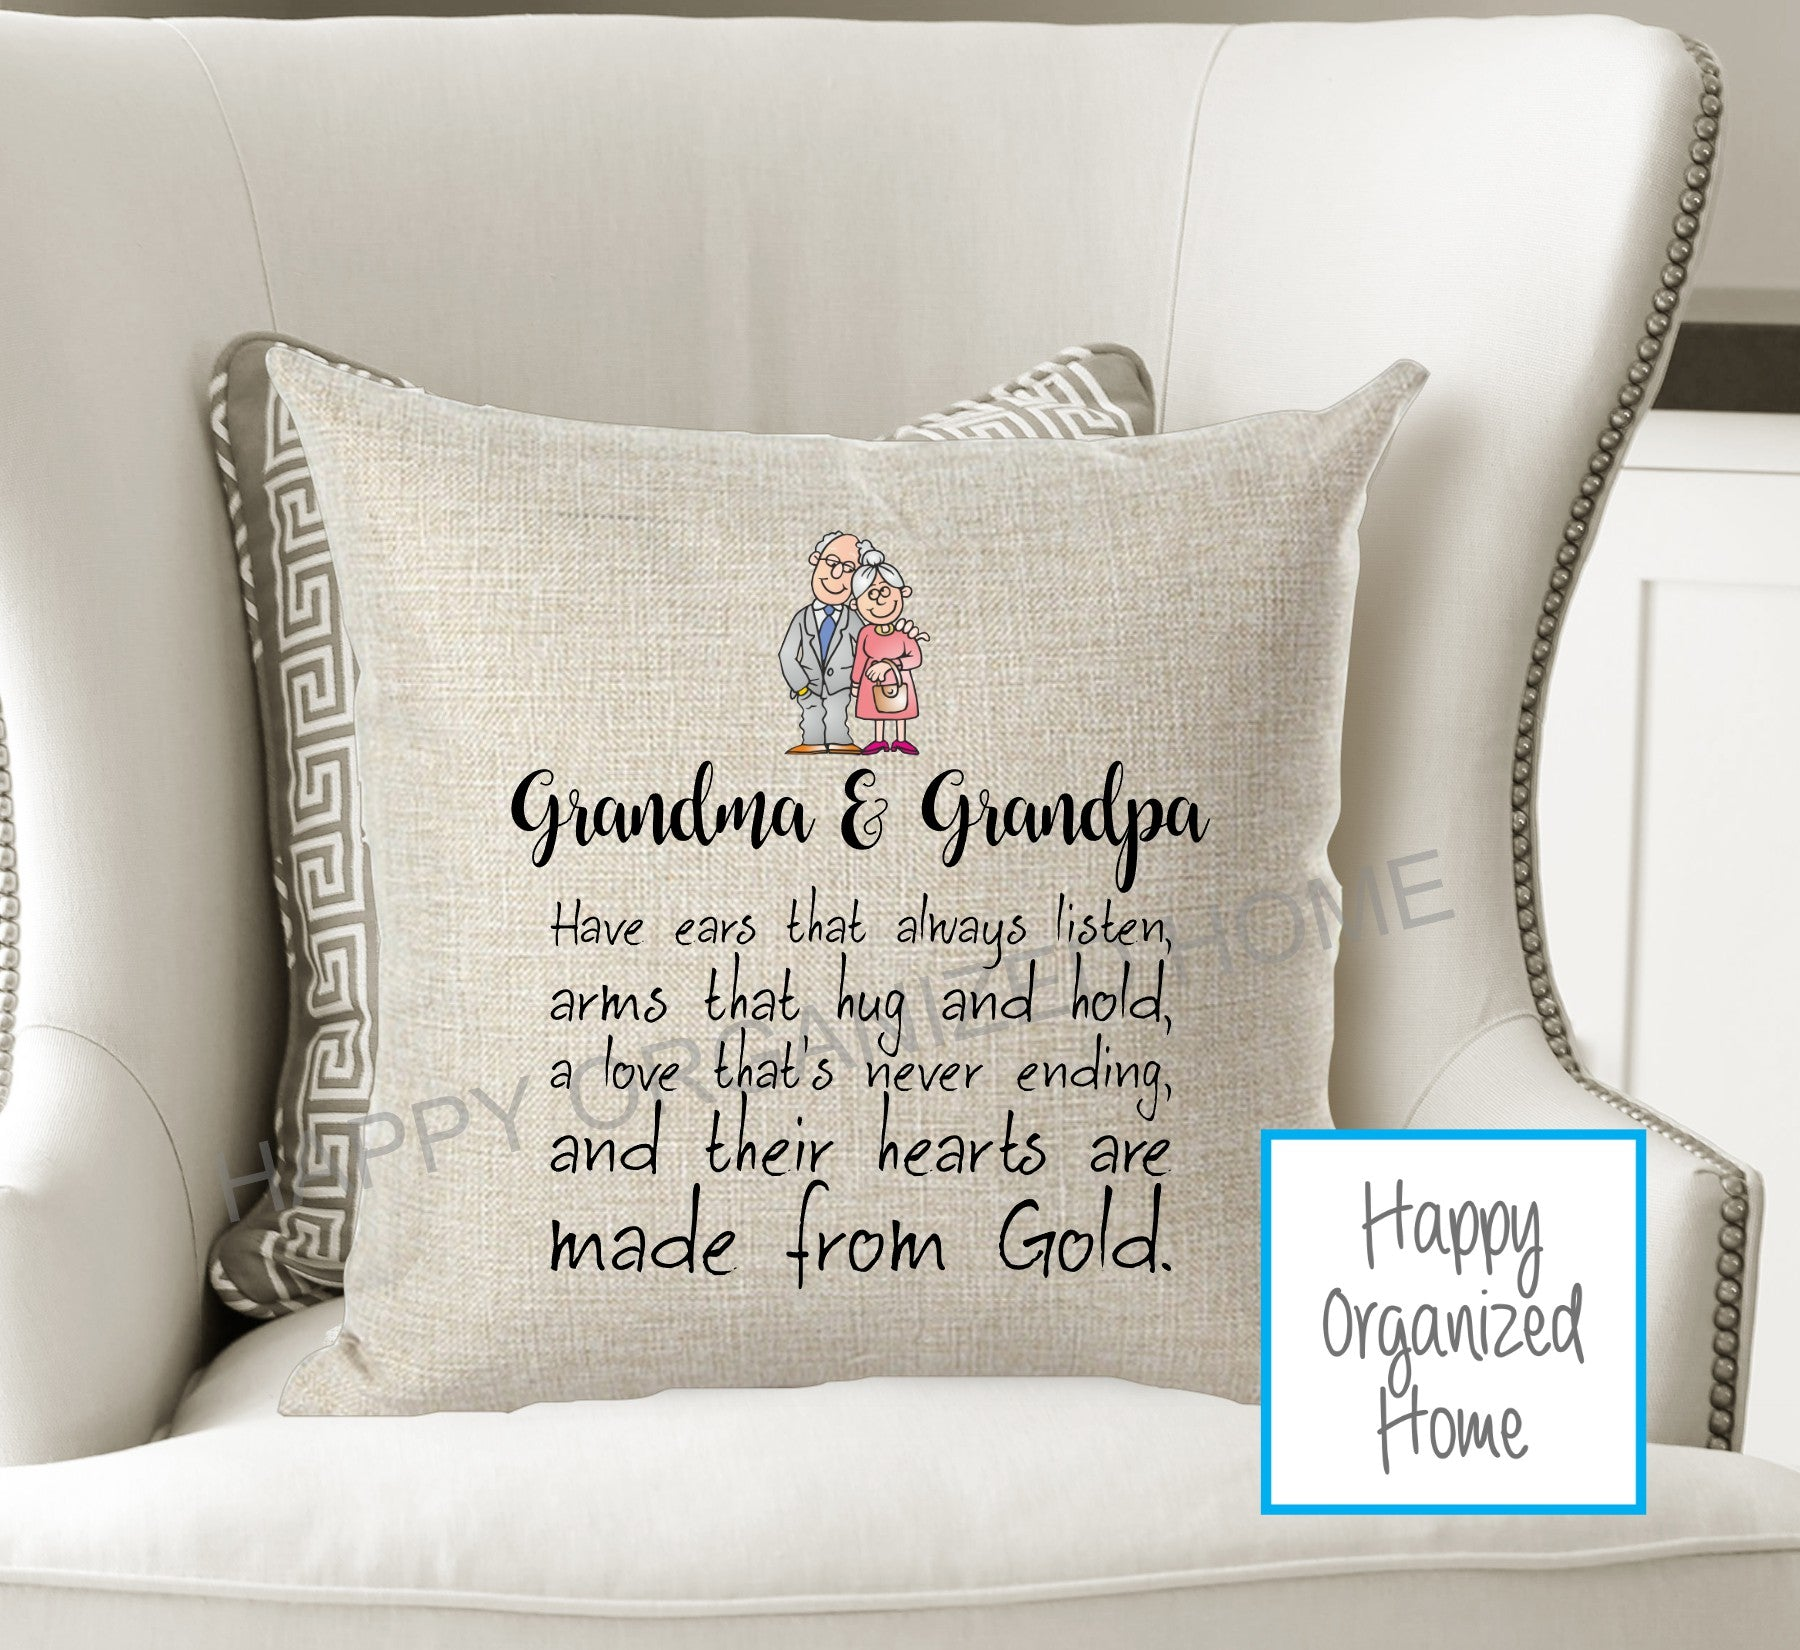 Grandparents have hearts of gold Decorative pillow